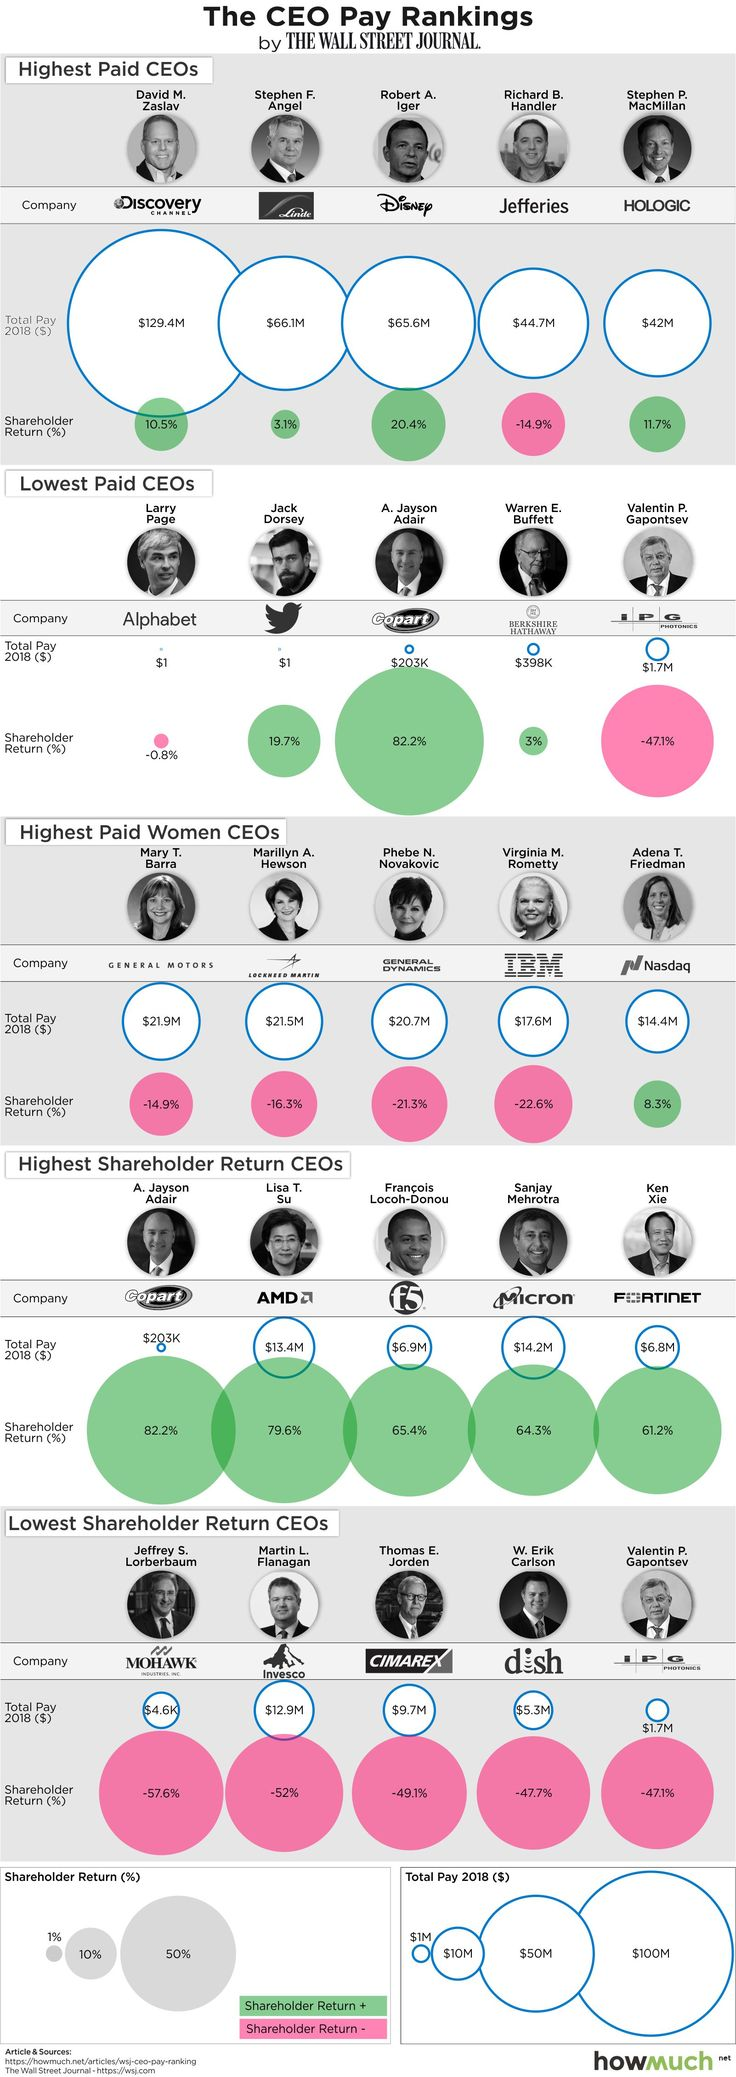 Pin by Wolfgang Lehmacher on Aha in 2020 Top ceo